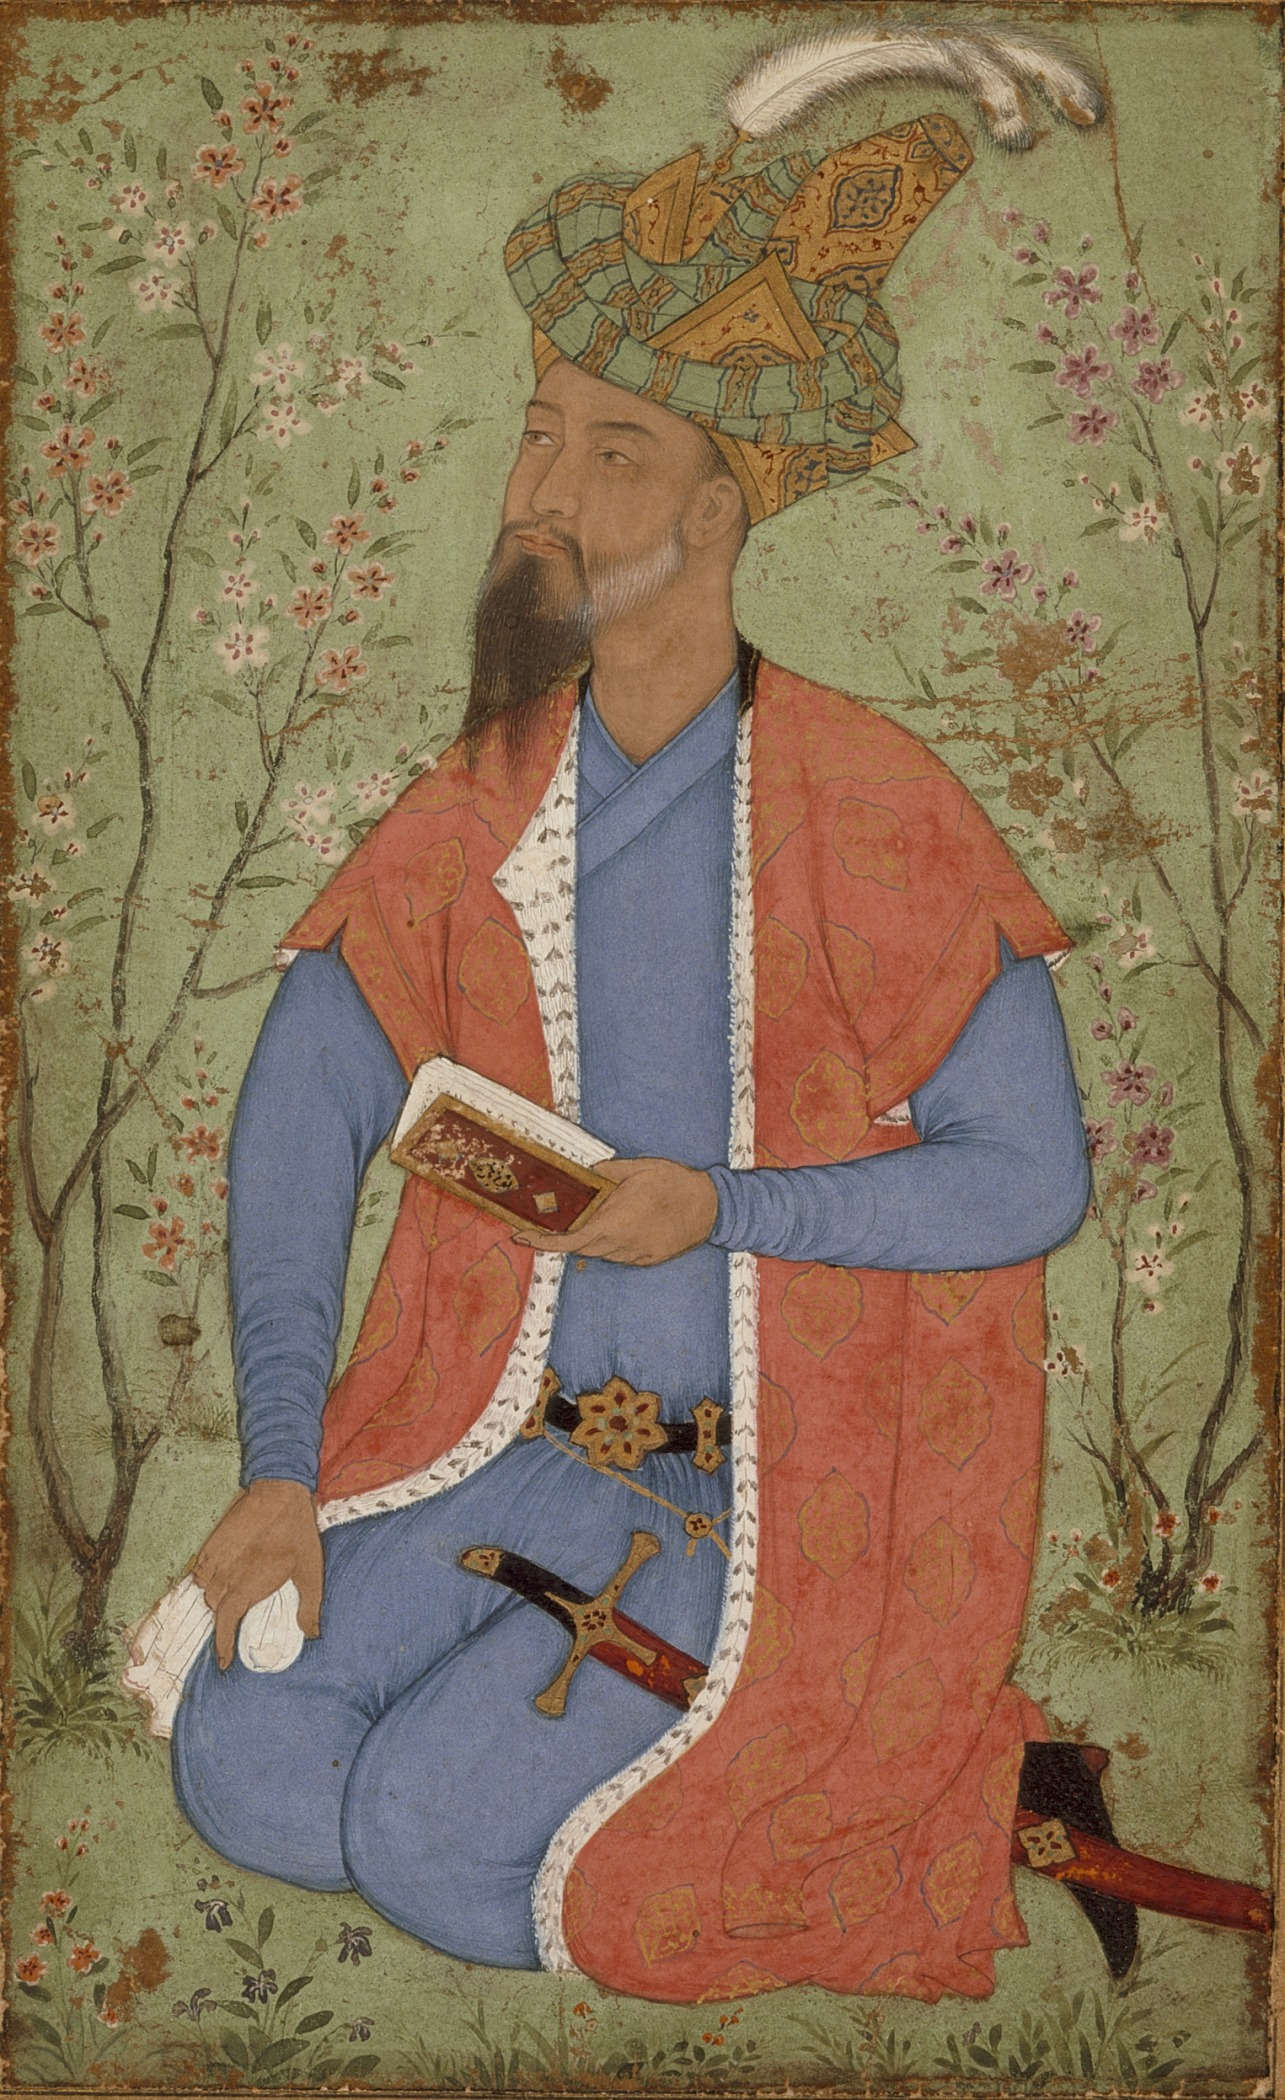 Hindal Mirza, the younger half brother of the second Mughal emperor Humayun. Credit: Wikimedia Commons